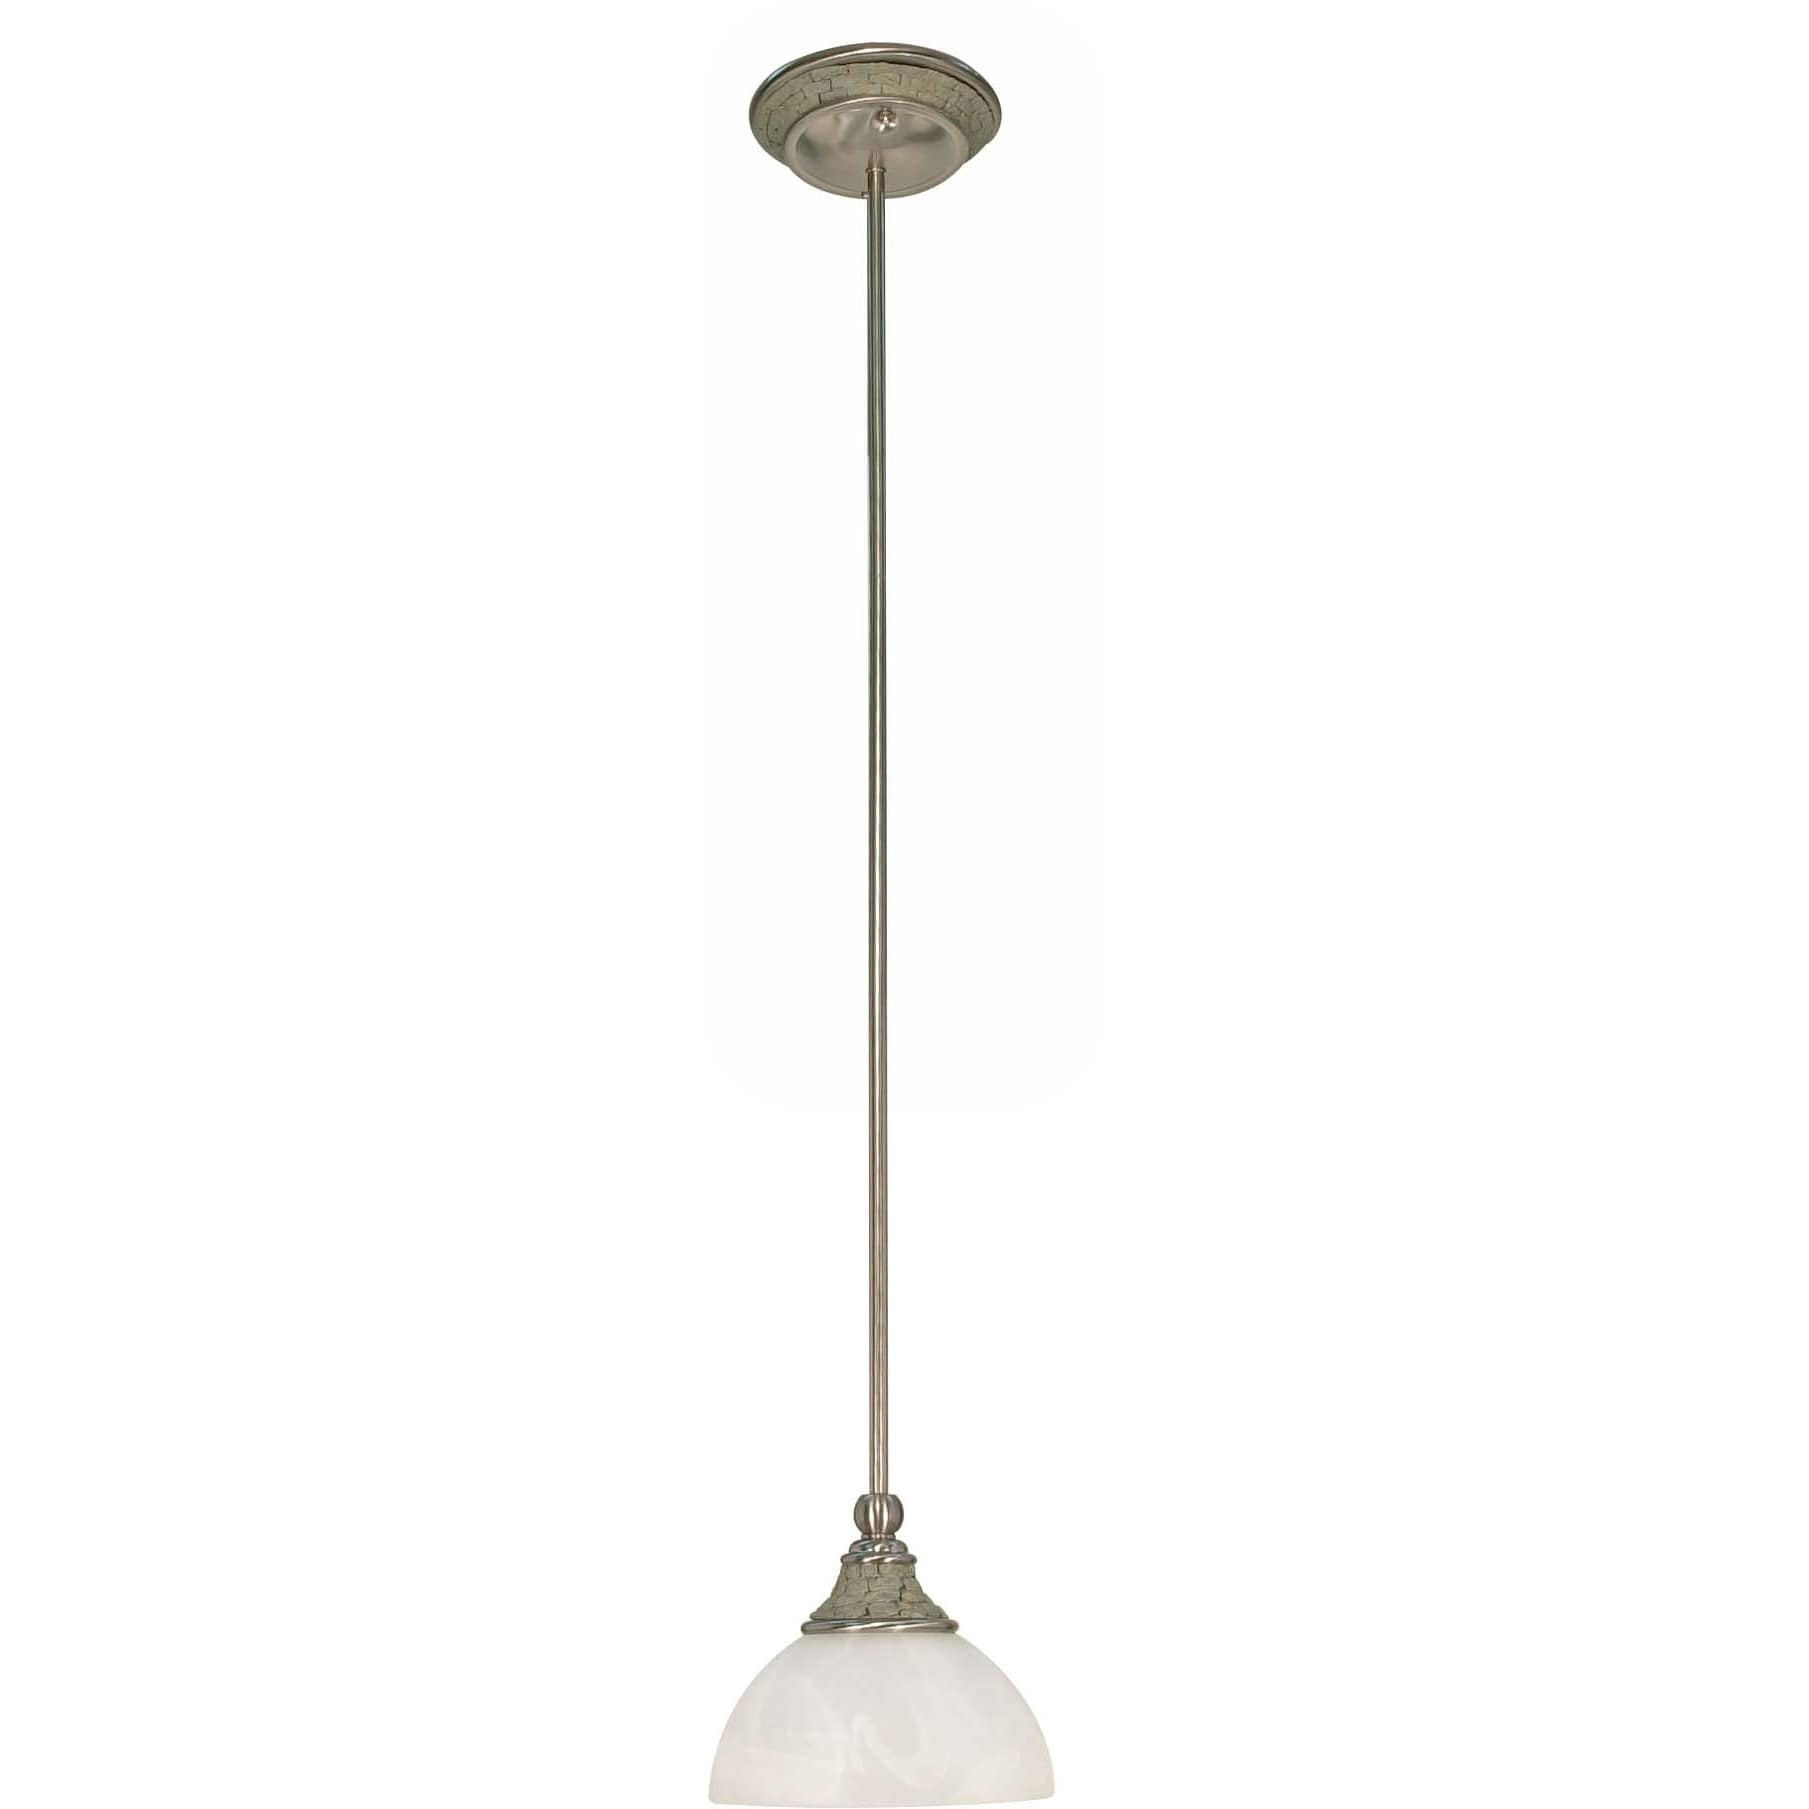 Rockport Milano Brushed Nickel Alabaster Glass 1-light Mini Pendant Fixture